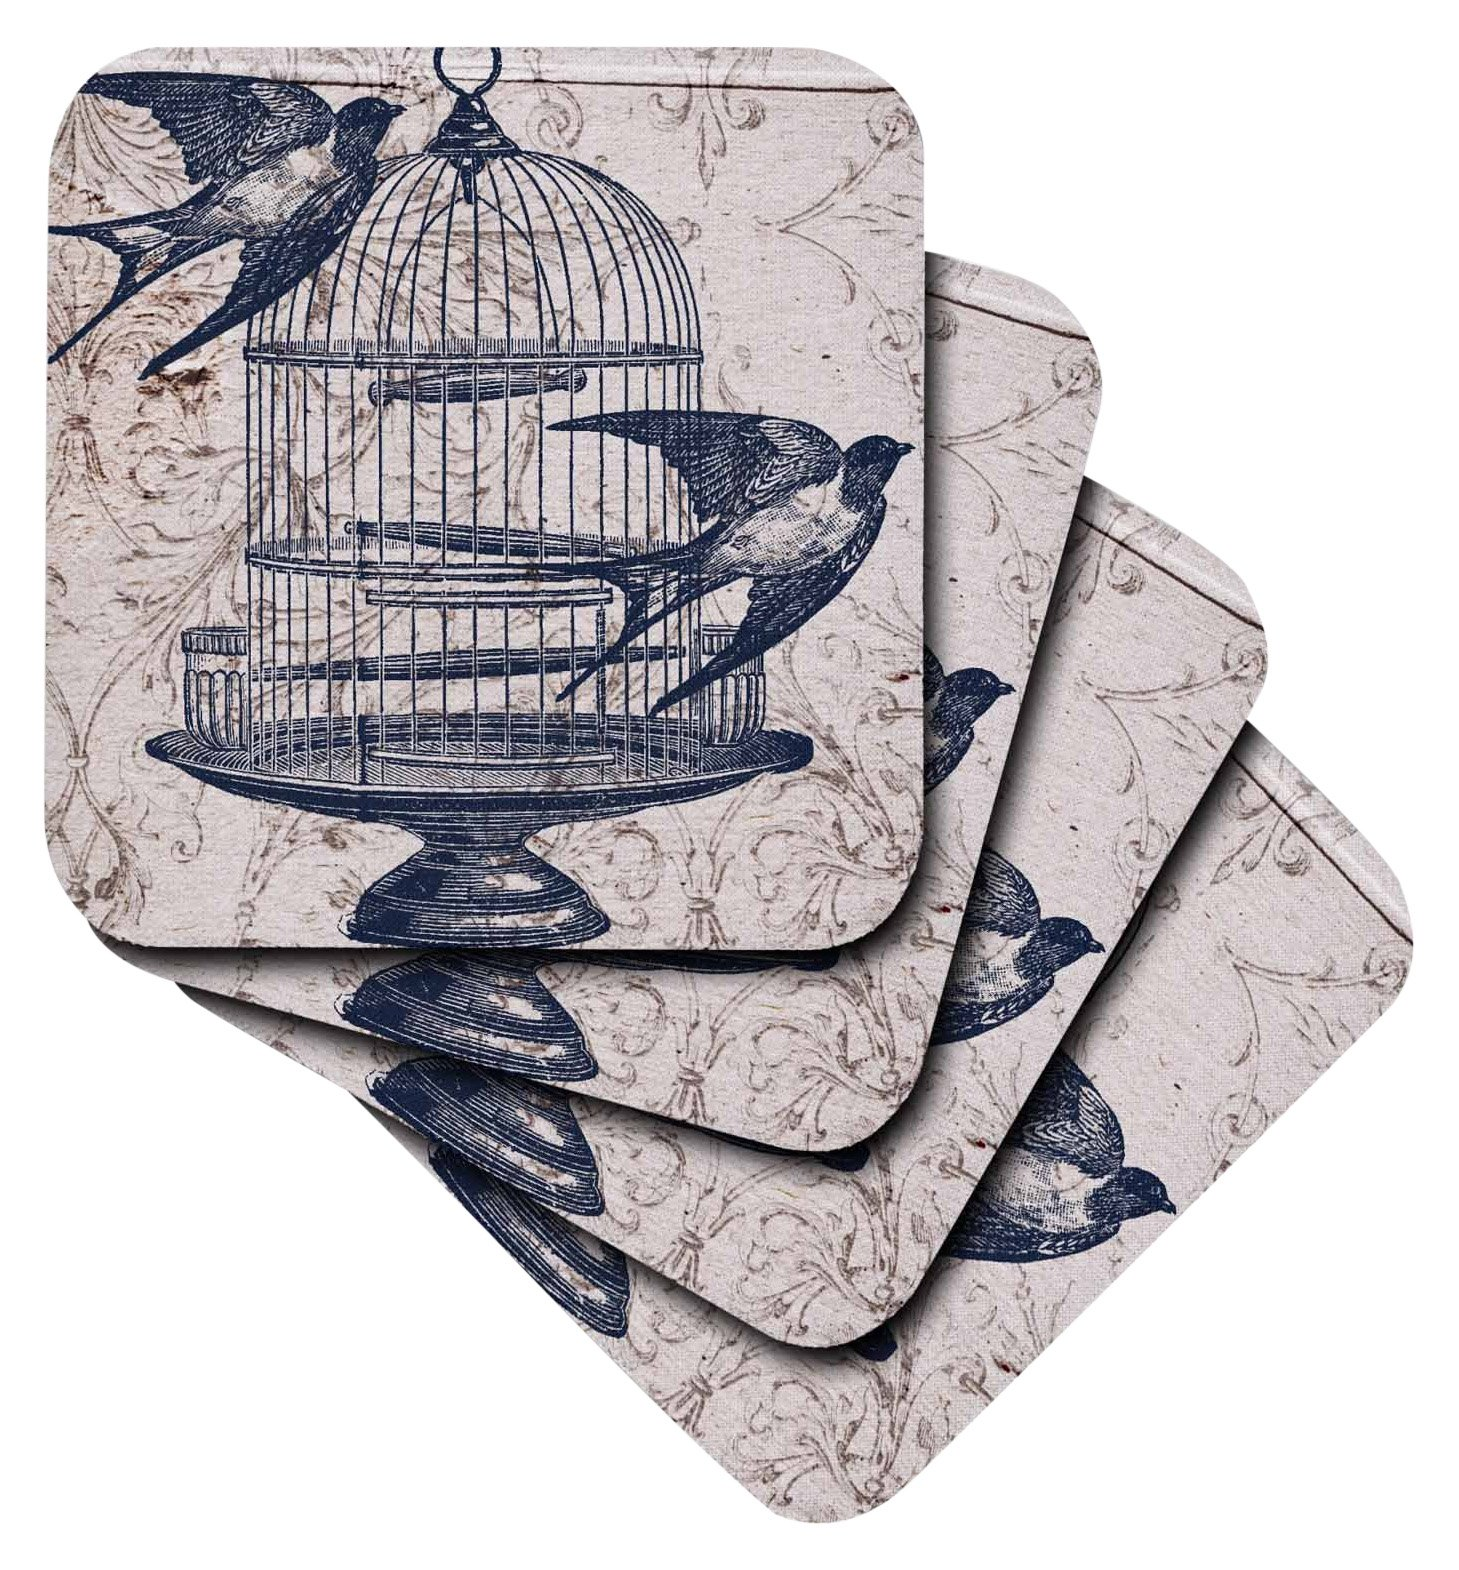 3dRose Vintage Birds with Bird Cage Steampunk Art - Ceramic Tile Coasters, Set of 4 (CST_110264_3)